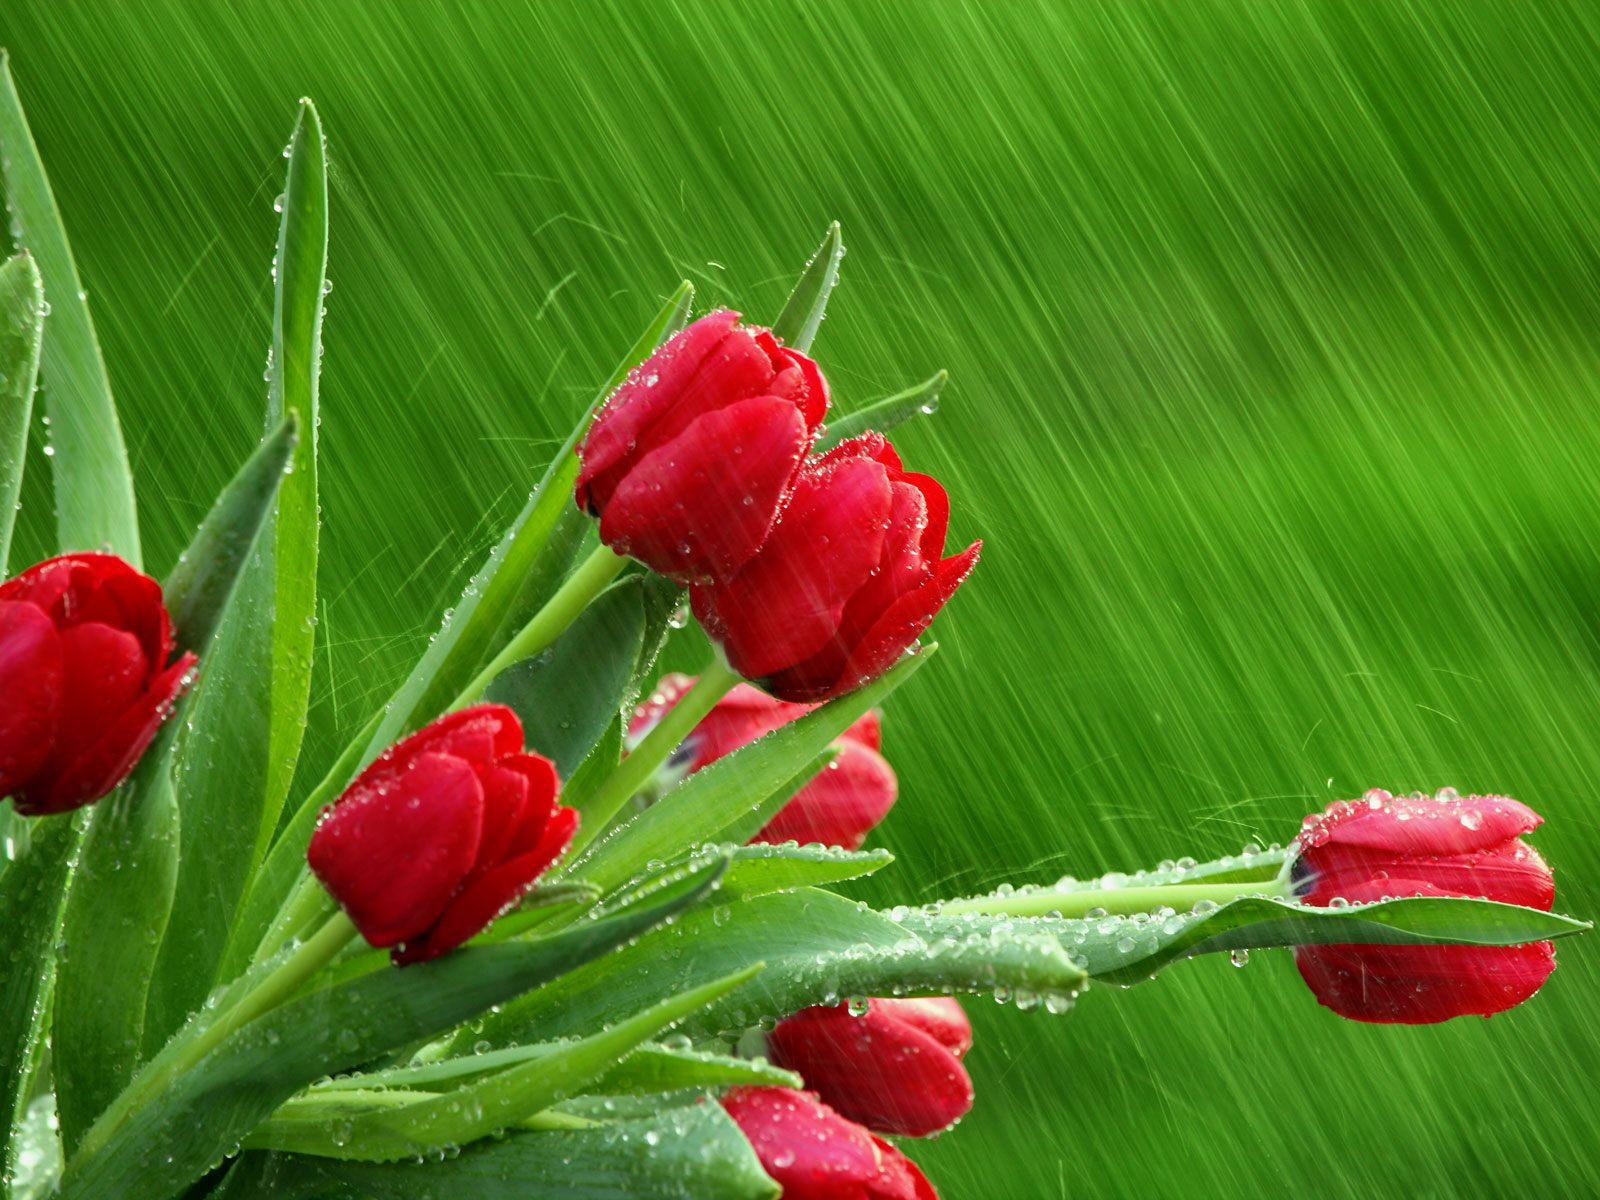 Raining Beautiful Wallpaper